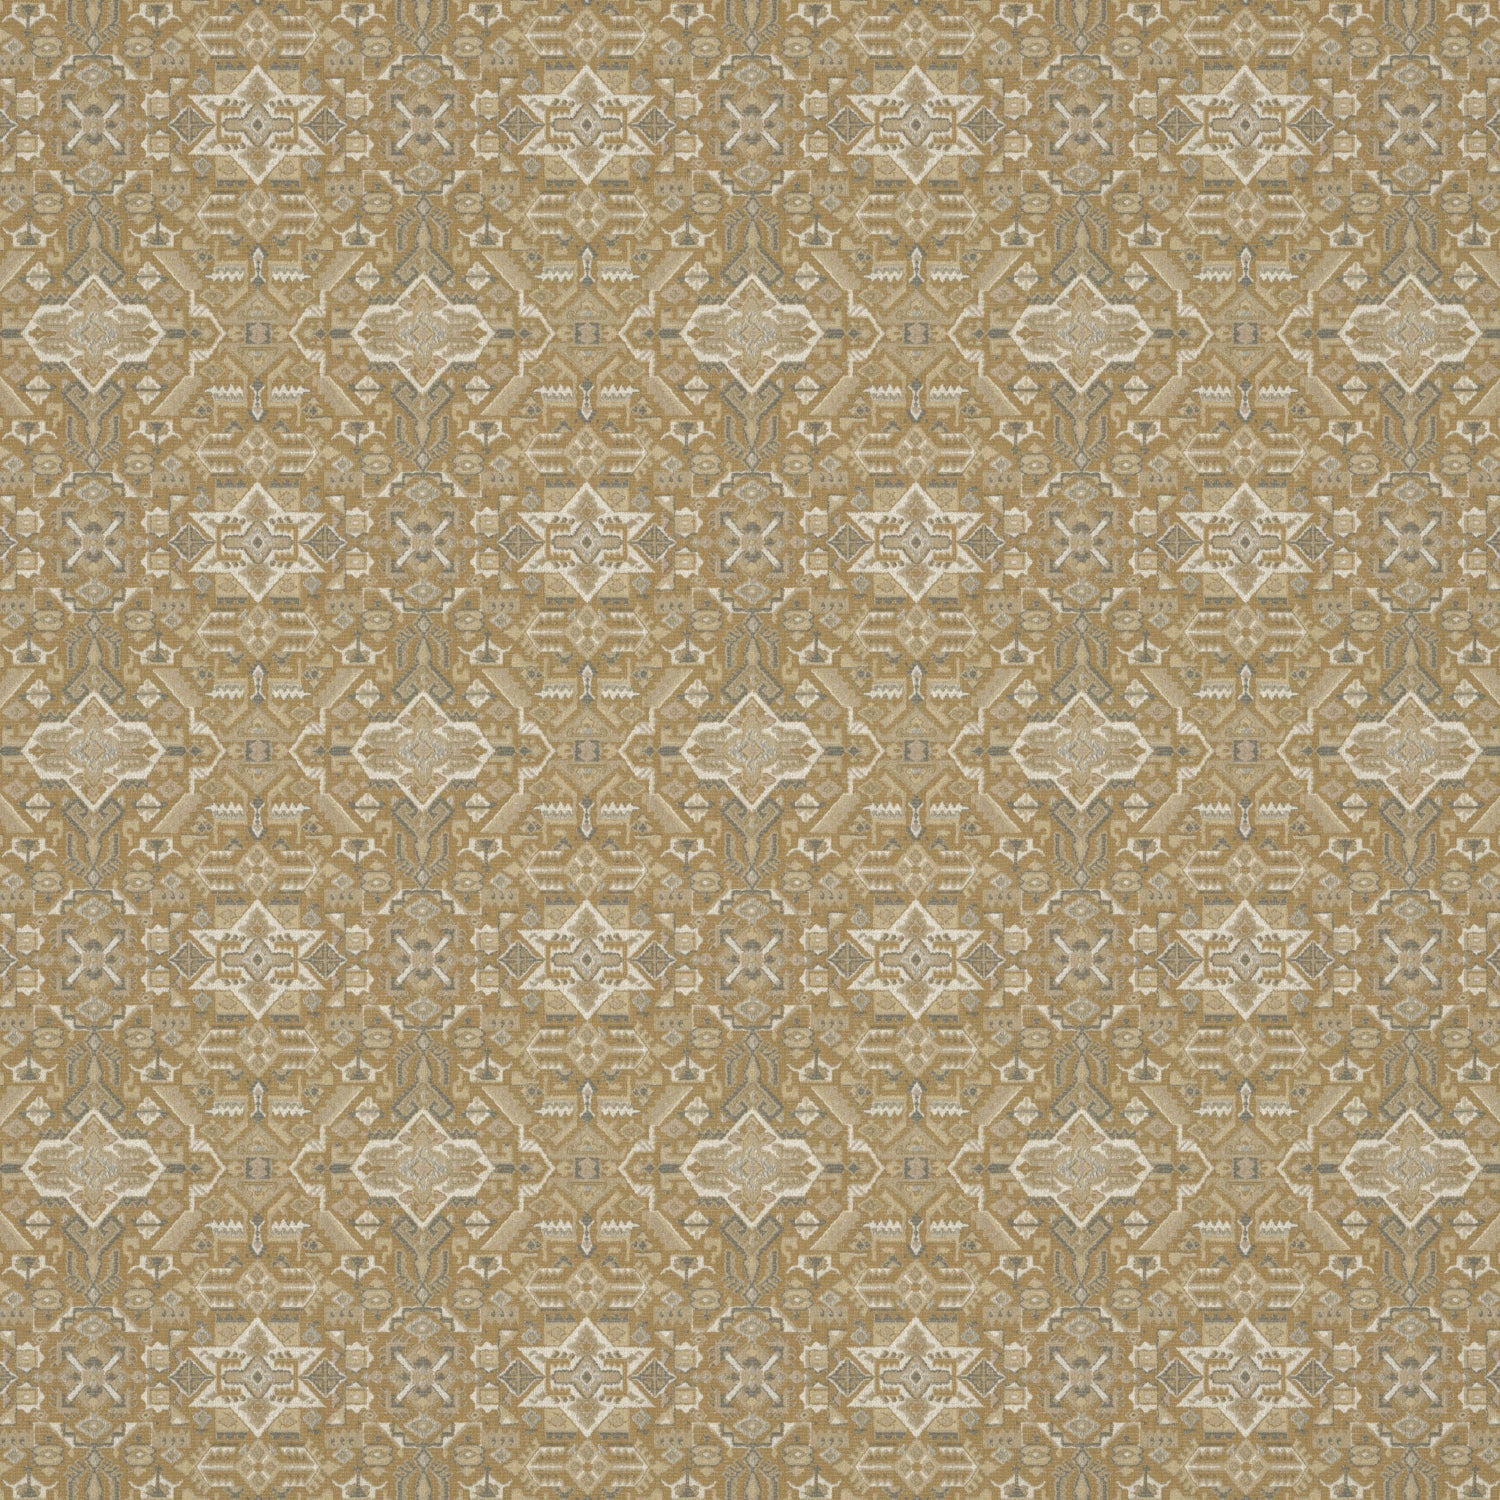 Fabric swatch of a dark neutral coloured large scale geometric weave fabric suitable upholstery